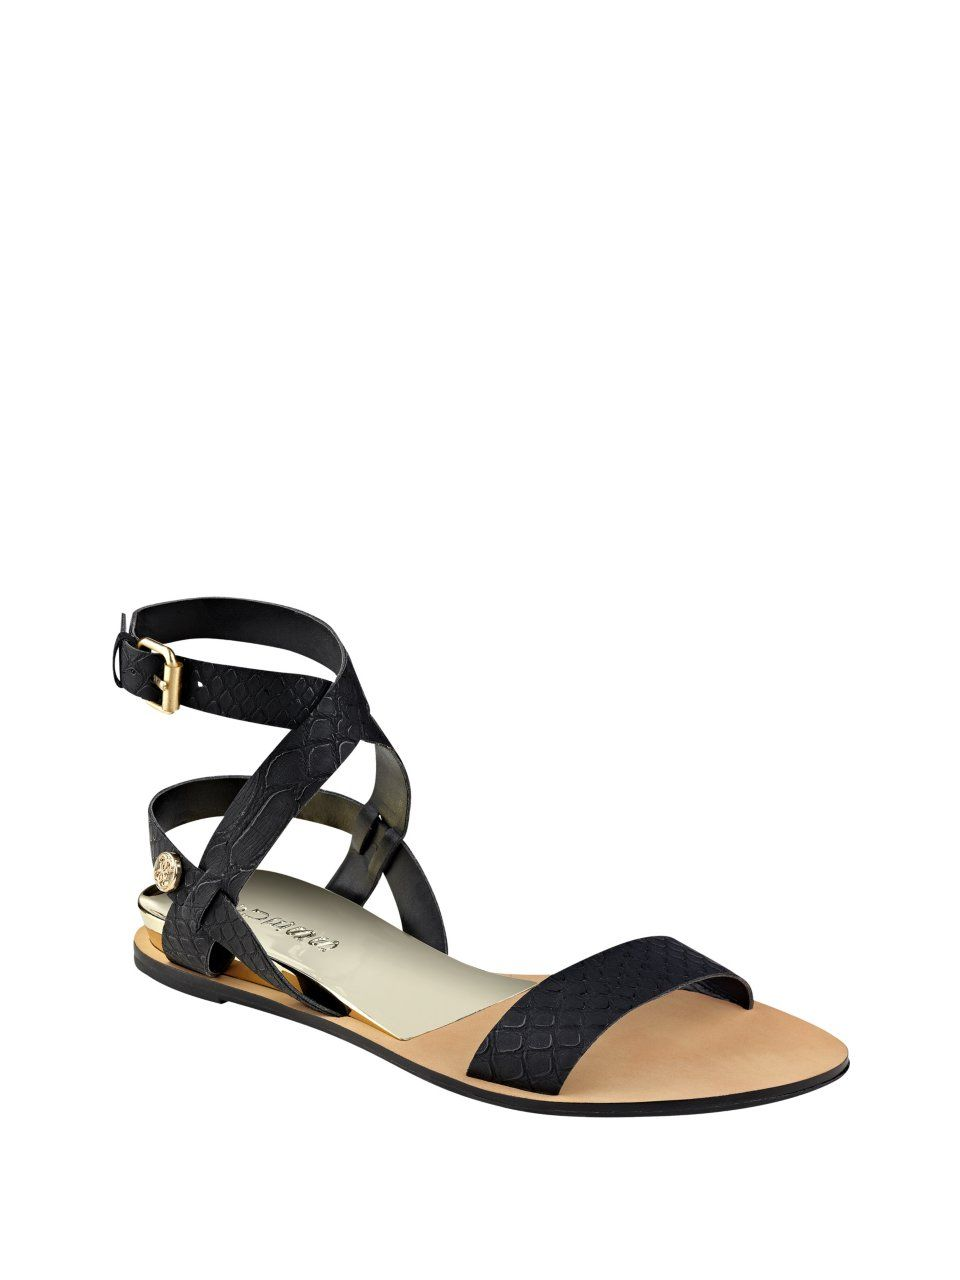 Guess Sandals Flats For Women | Dkny Sandals